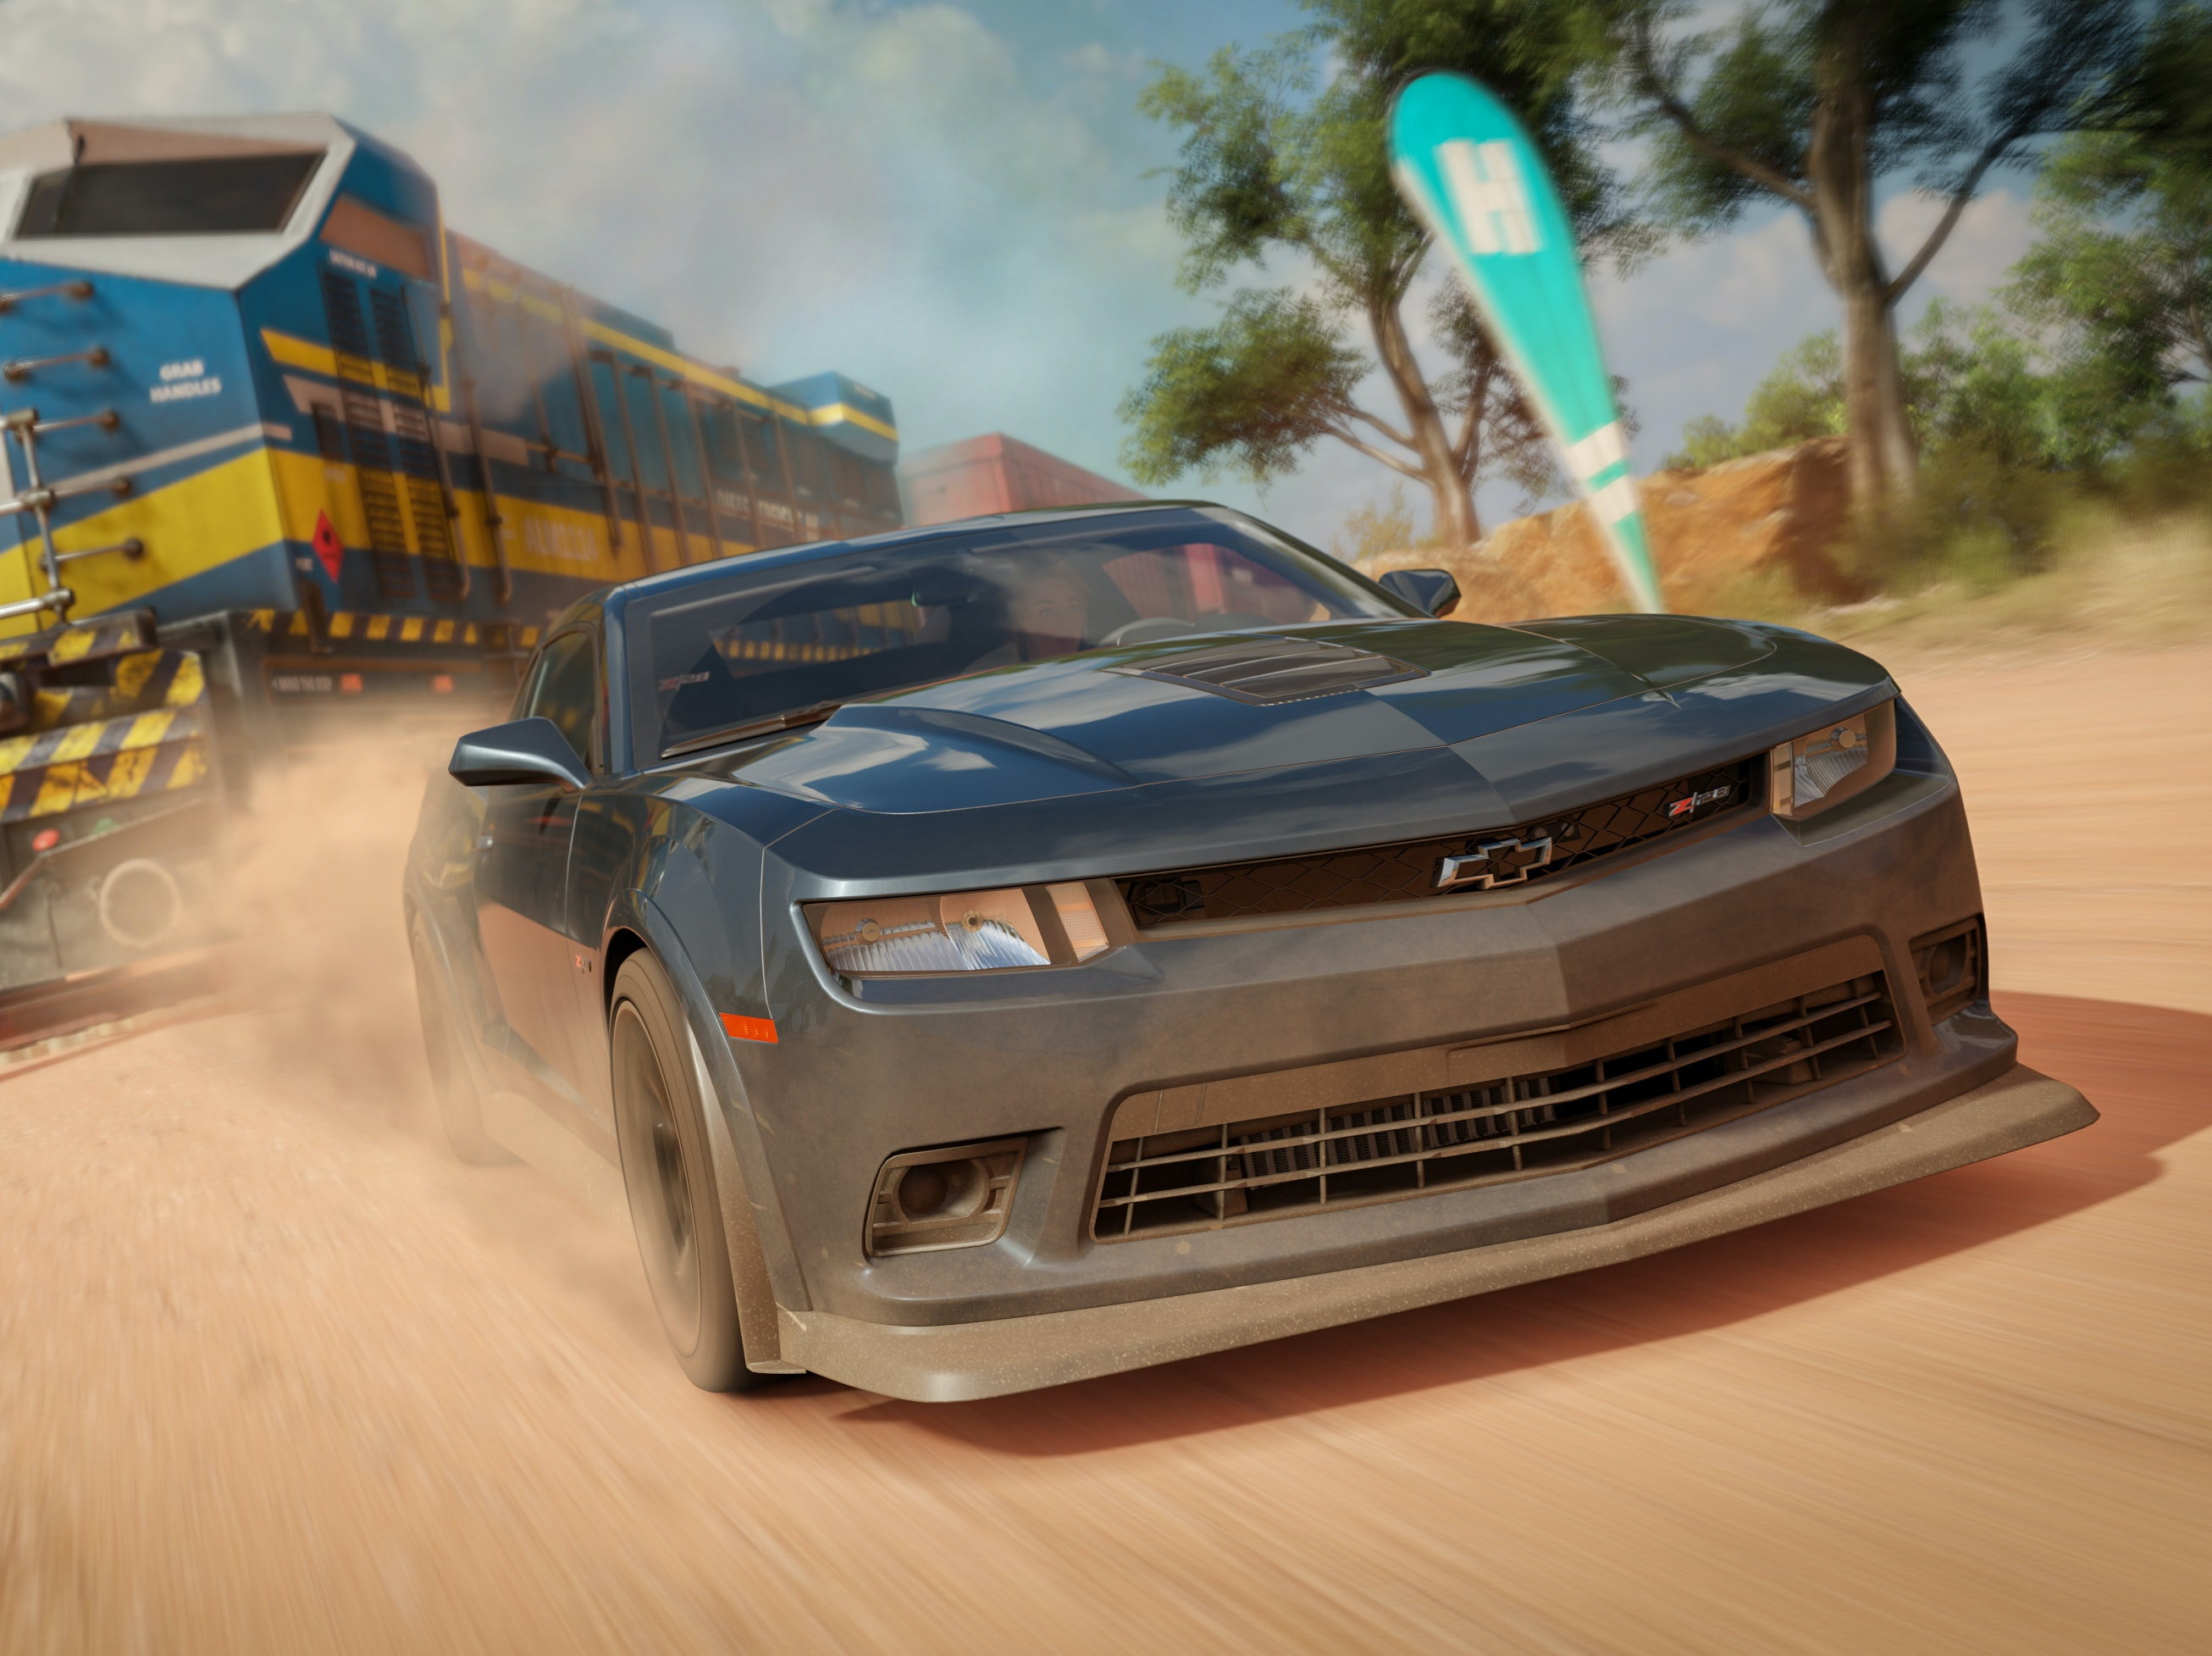 'Forza Horizon 3' Is Grinding Without Purpose